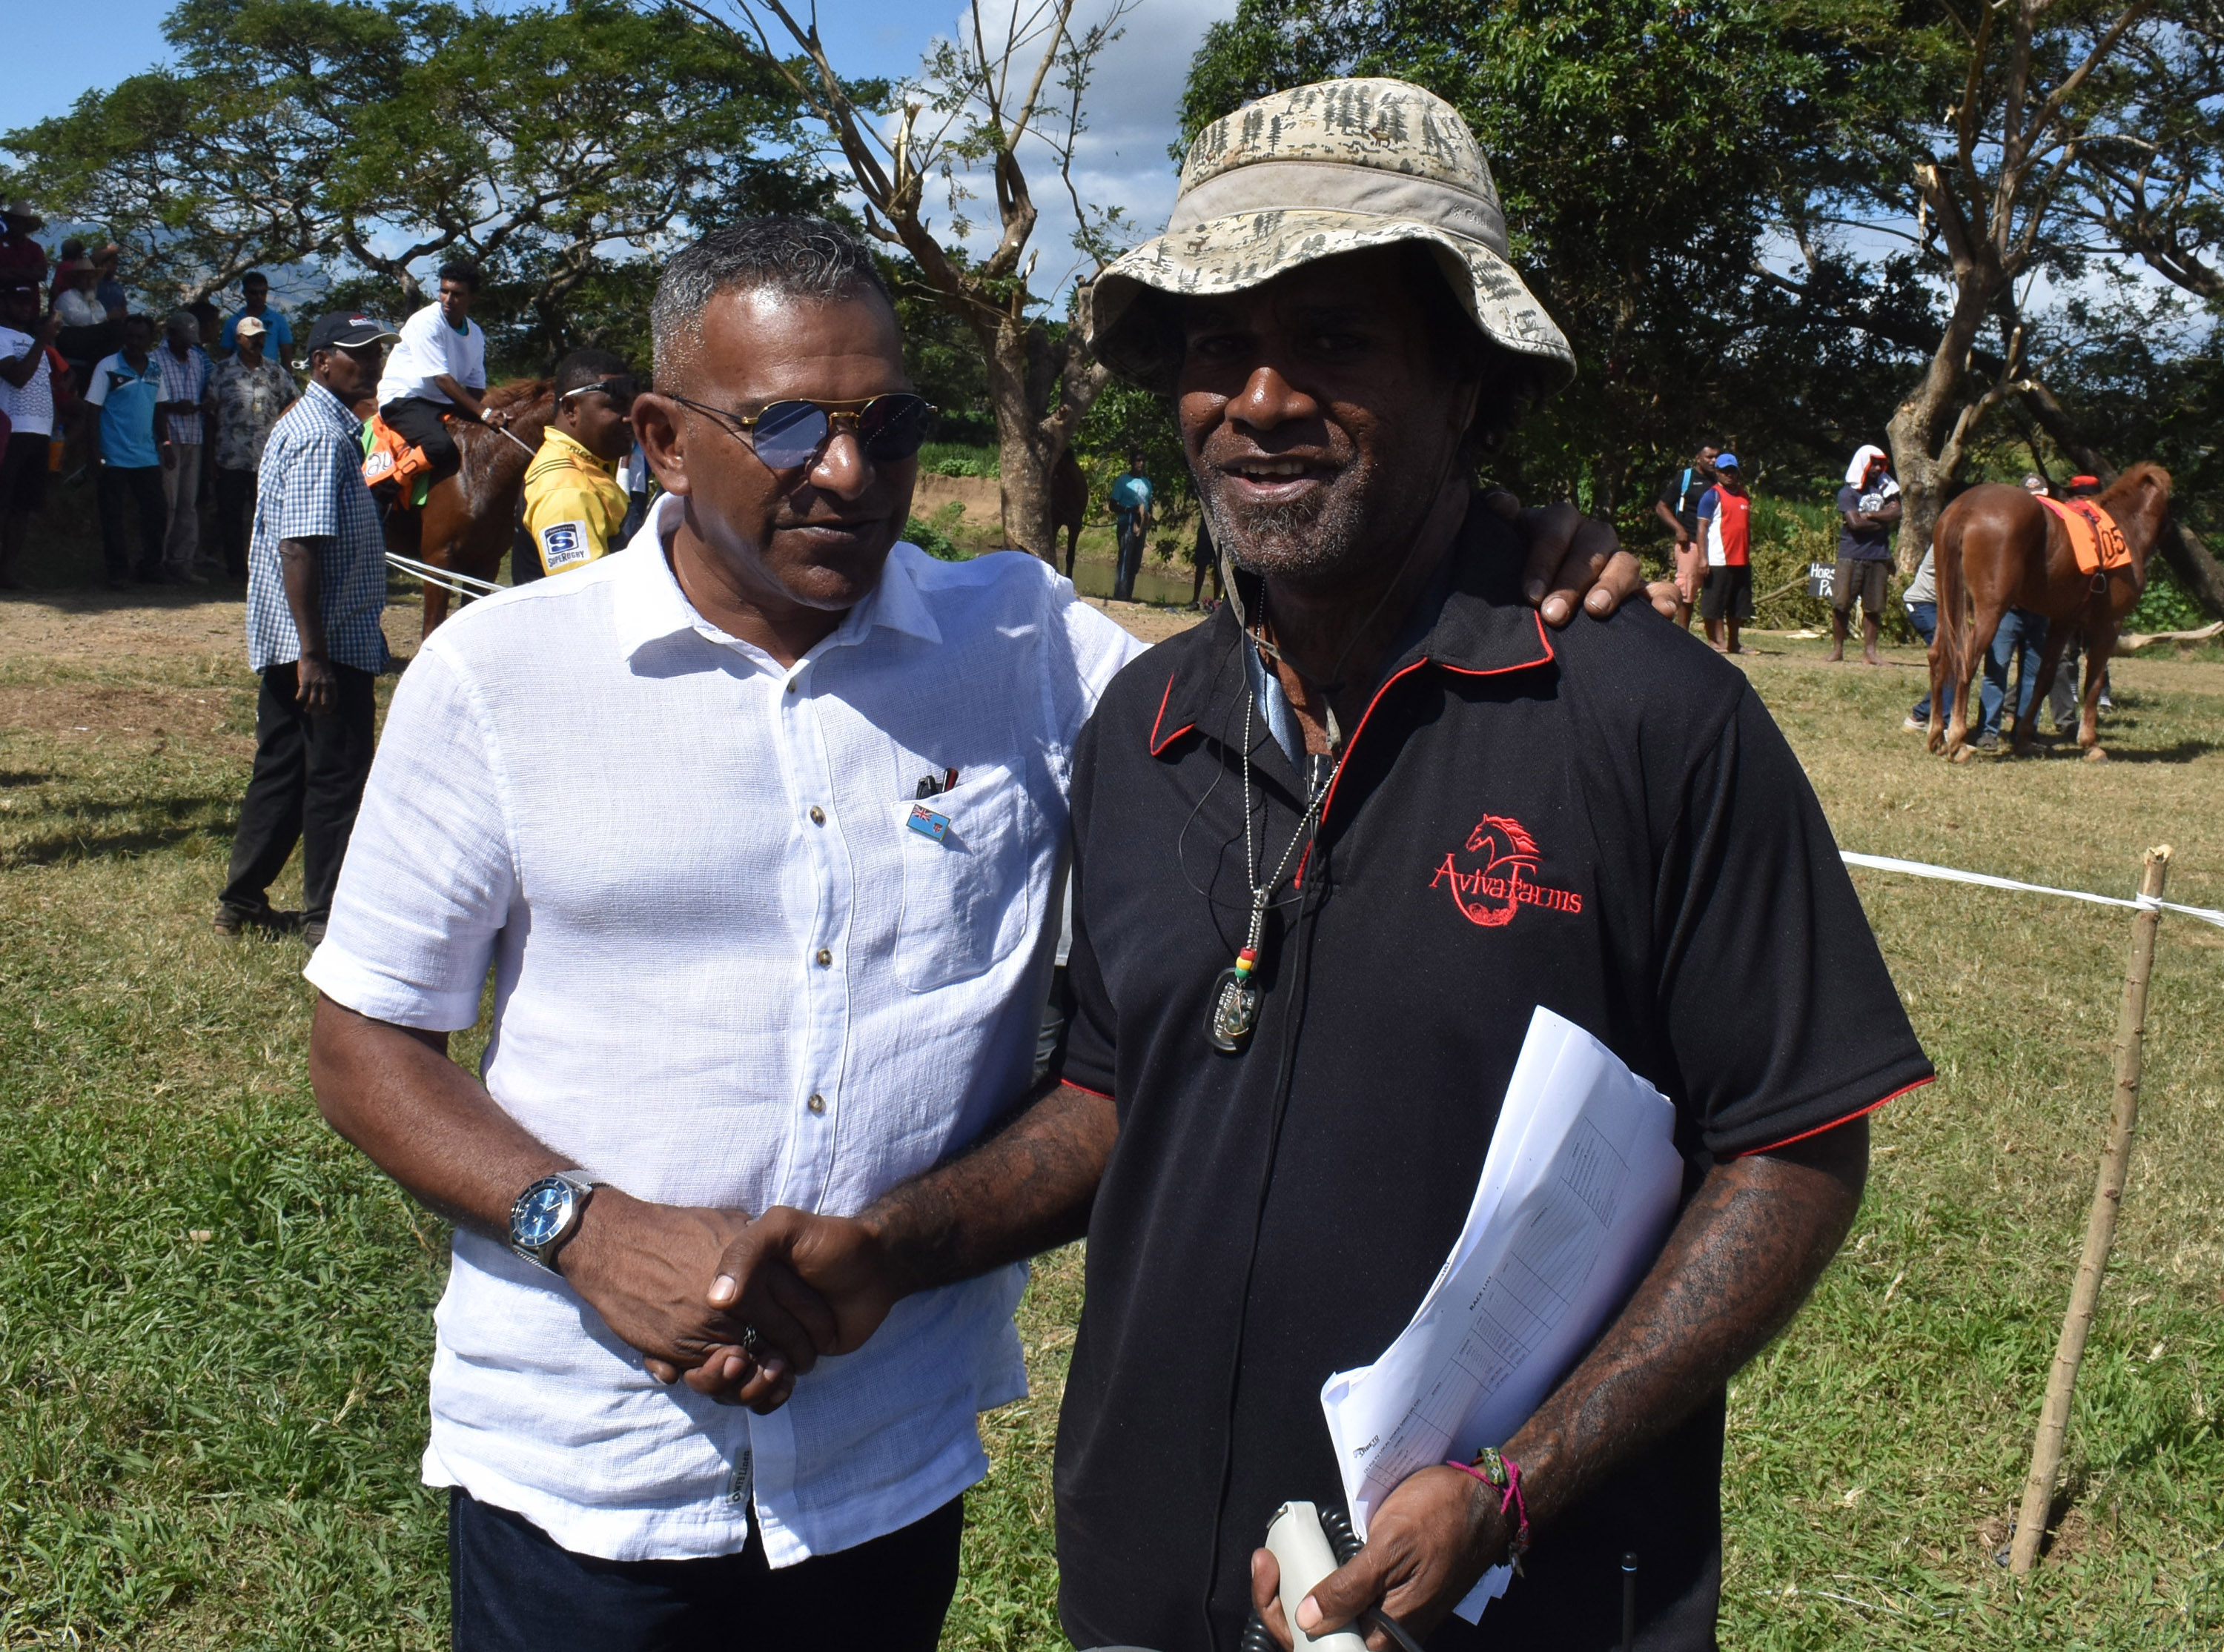 Minister for Industry, Trade, Tourism, Lands and Mineral Resources, Faiyaz Koya with Race director Livai Tora at the official opening of the Sabeto Races at Aviva Farms in Sabeto, Nadi on June 30, 2018. Photo: Waisea Nsokia